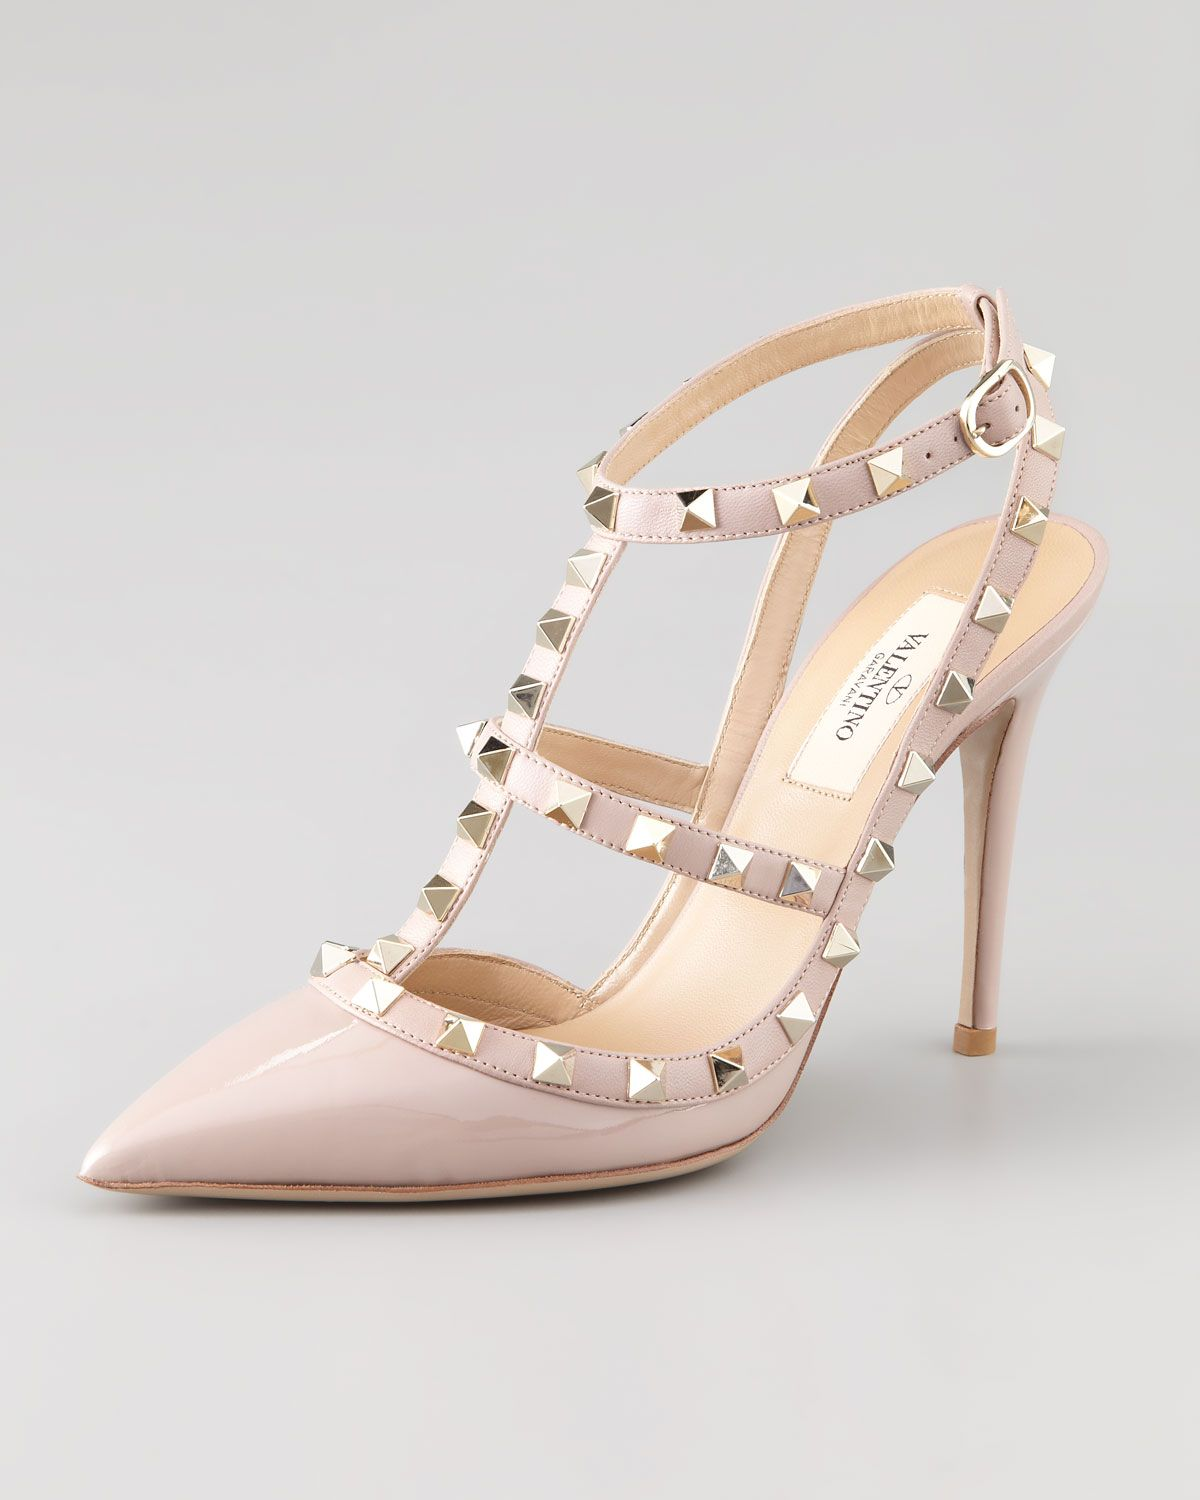 Valentino Classic Logo Leather Pumps cNhjuINo